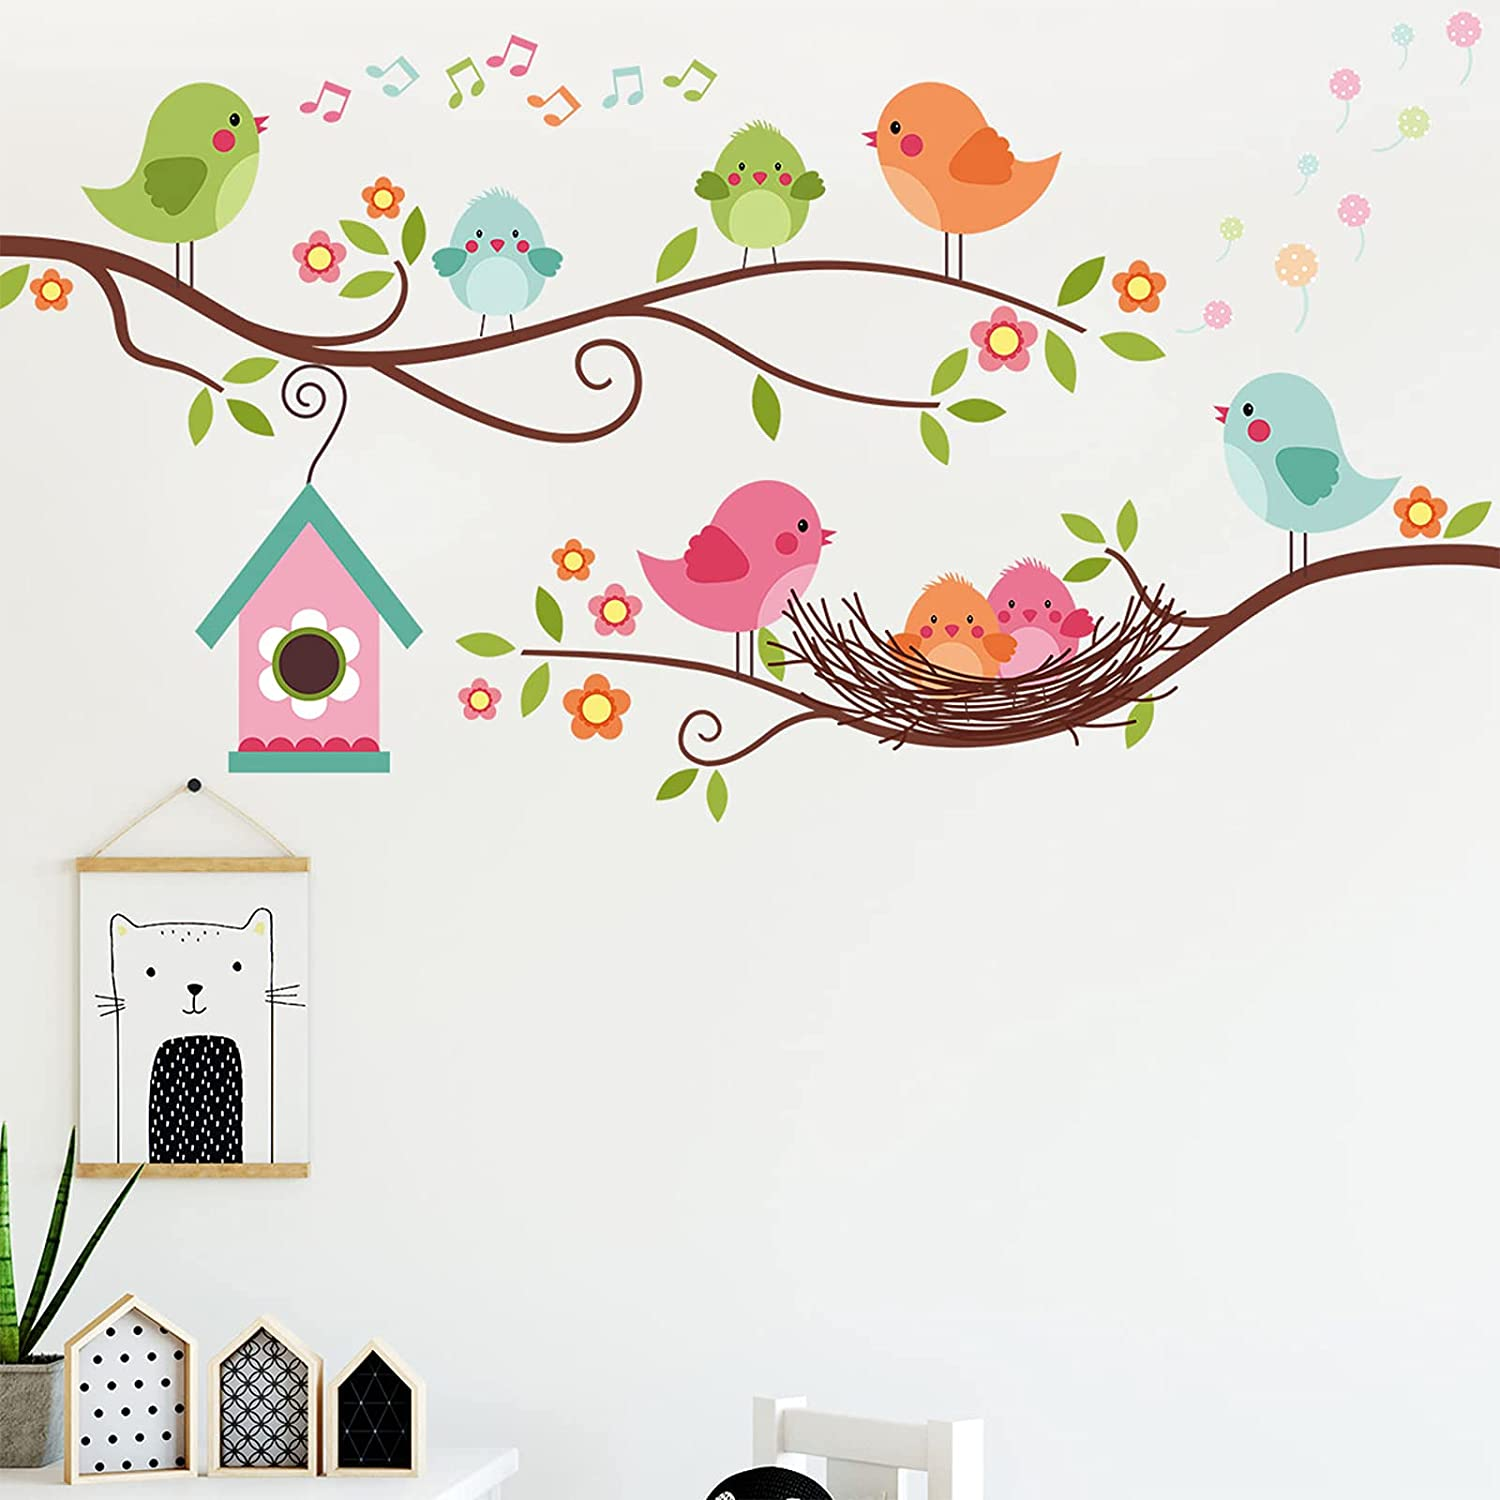 Colorful Robin Bird Wall Decals, Lovely Birds Singing on The Tree Branch Wall Stickers, Tree Vines Birdhouse with Flowers Wall Stickers, Removable DIY Art Wall Decors for Kids Bedroom Baby Nursery